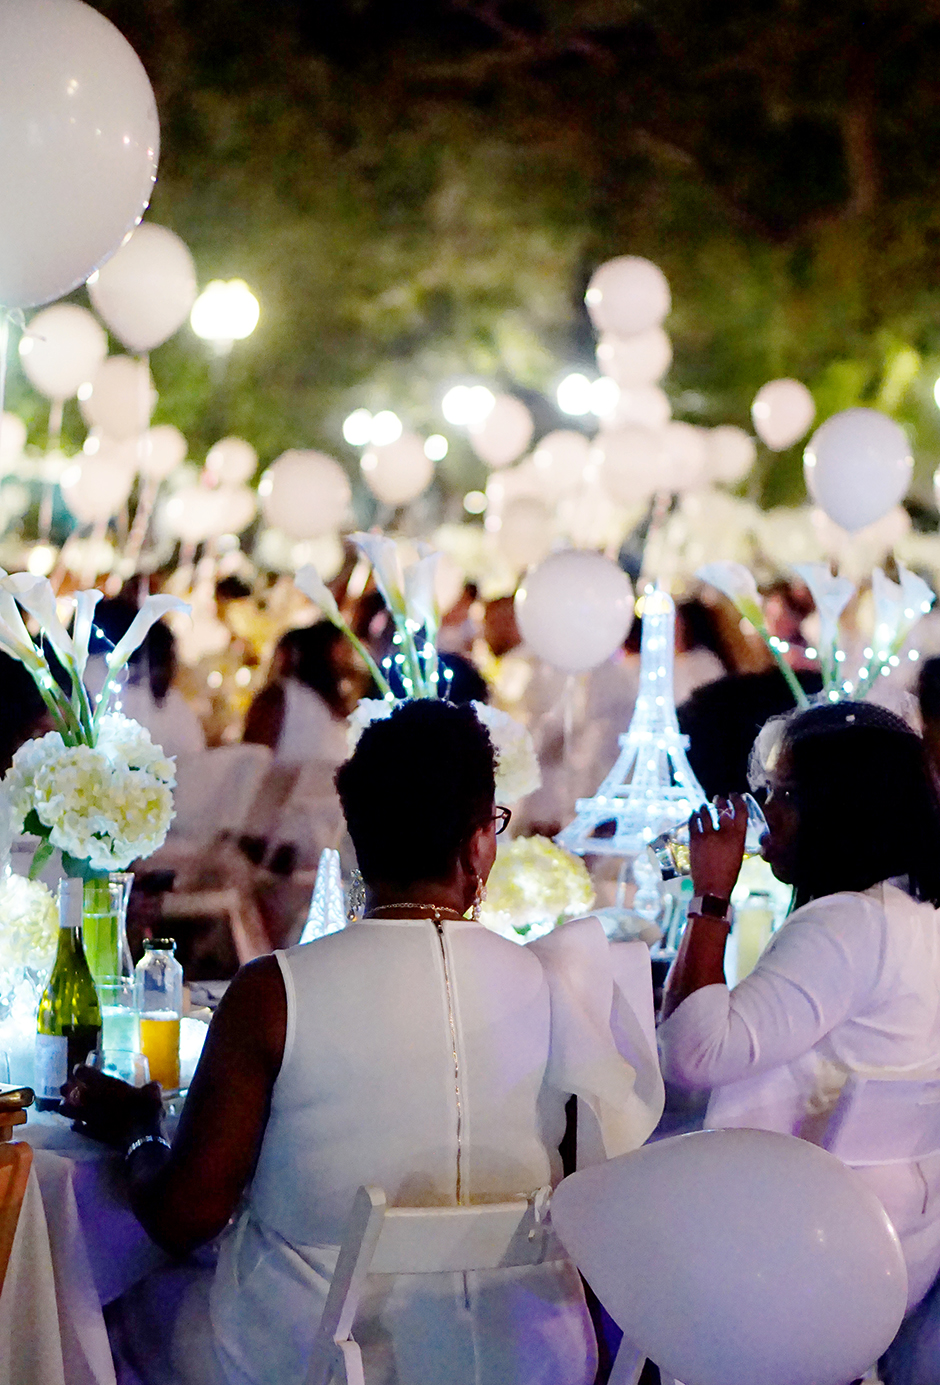 Diner en Blanc White Theme Party Outdoors